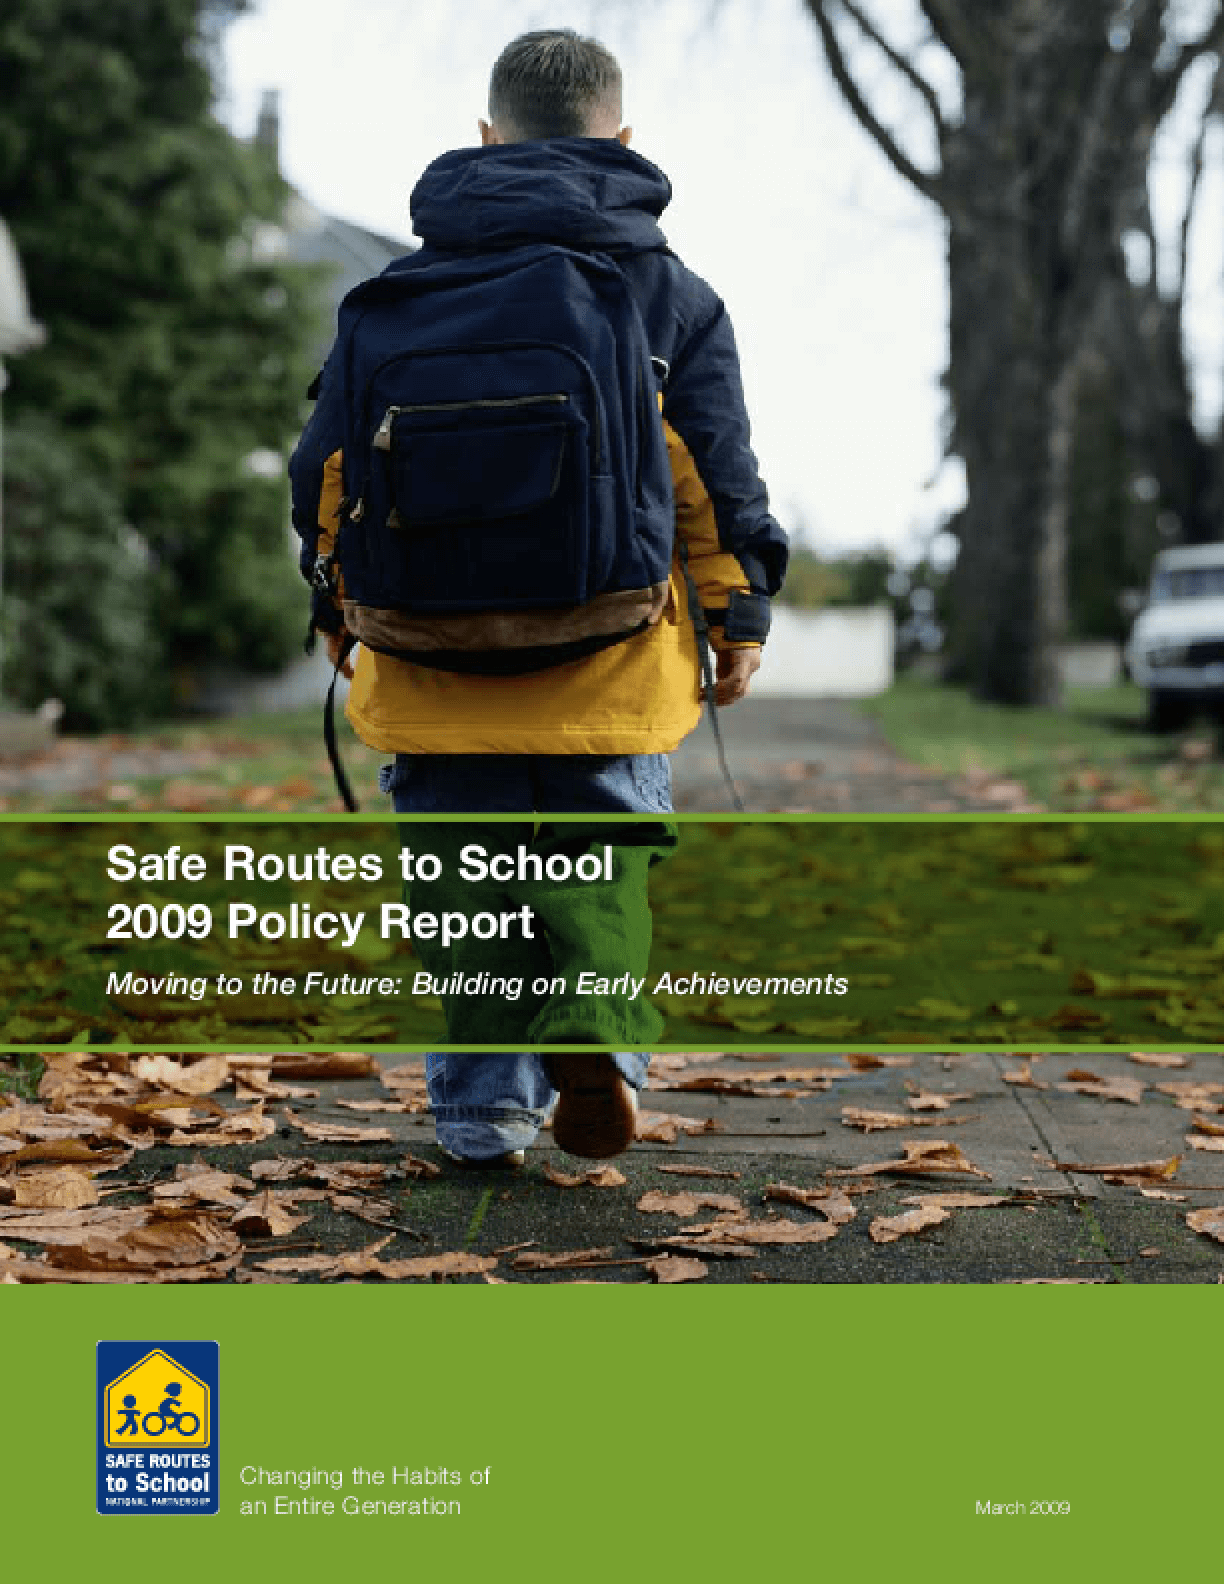 Safe Routes to School 2009 Policy Report: Moving to the Future: Building on Early Achievements